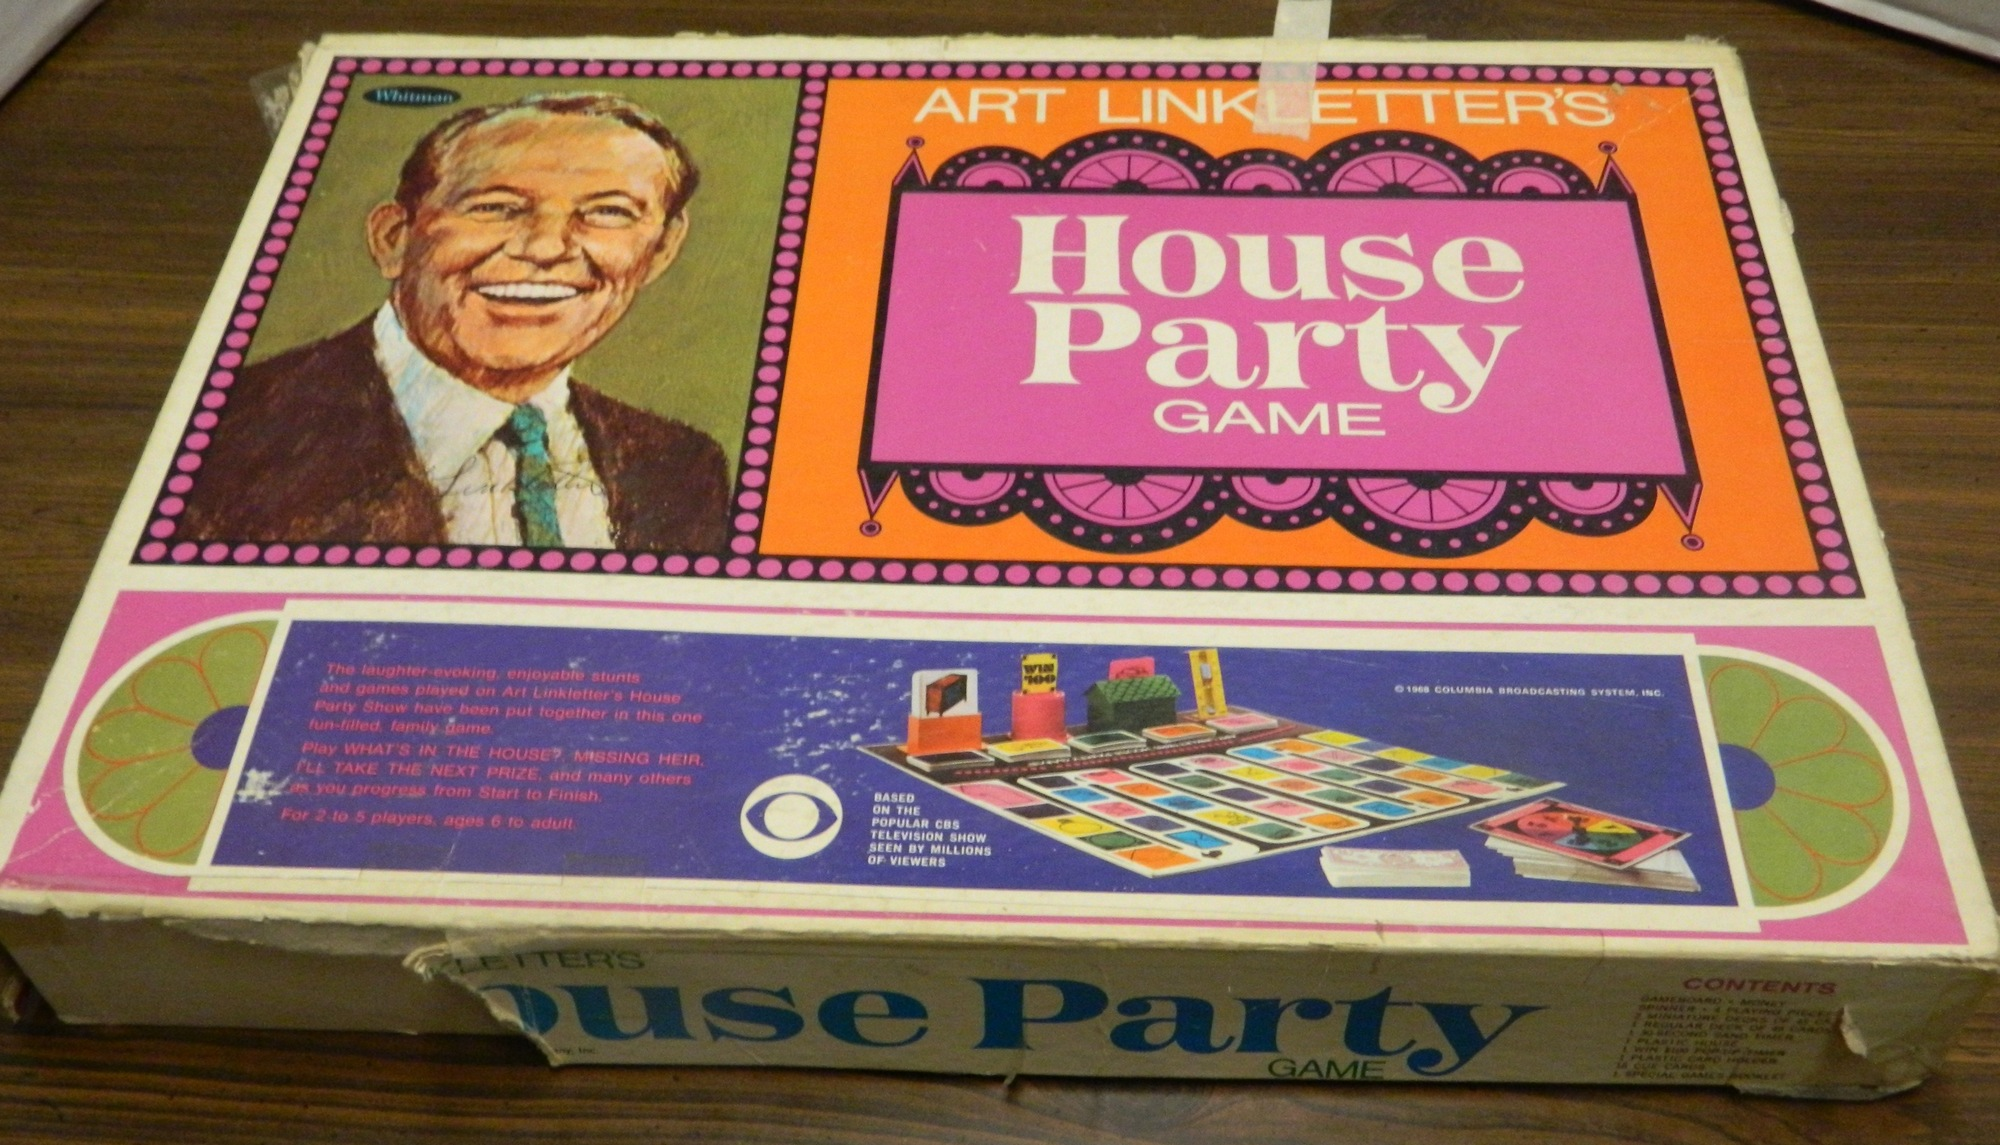 Box for Art Linkletter's House Party